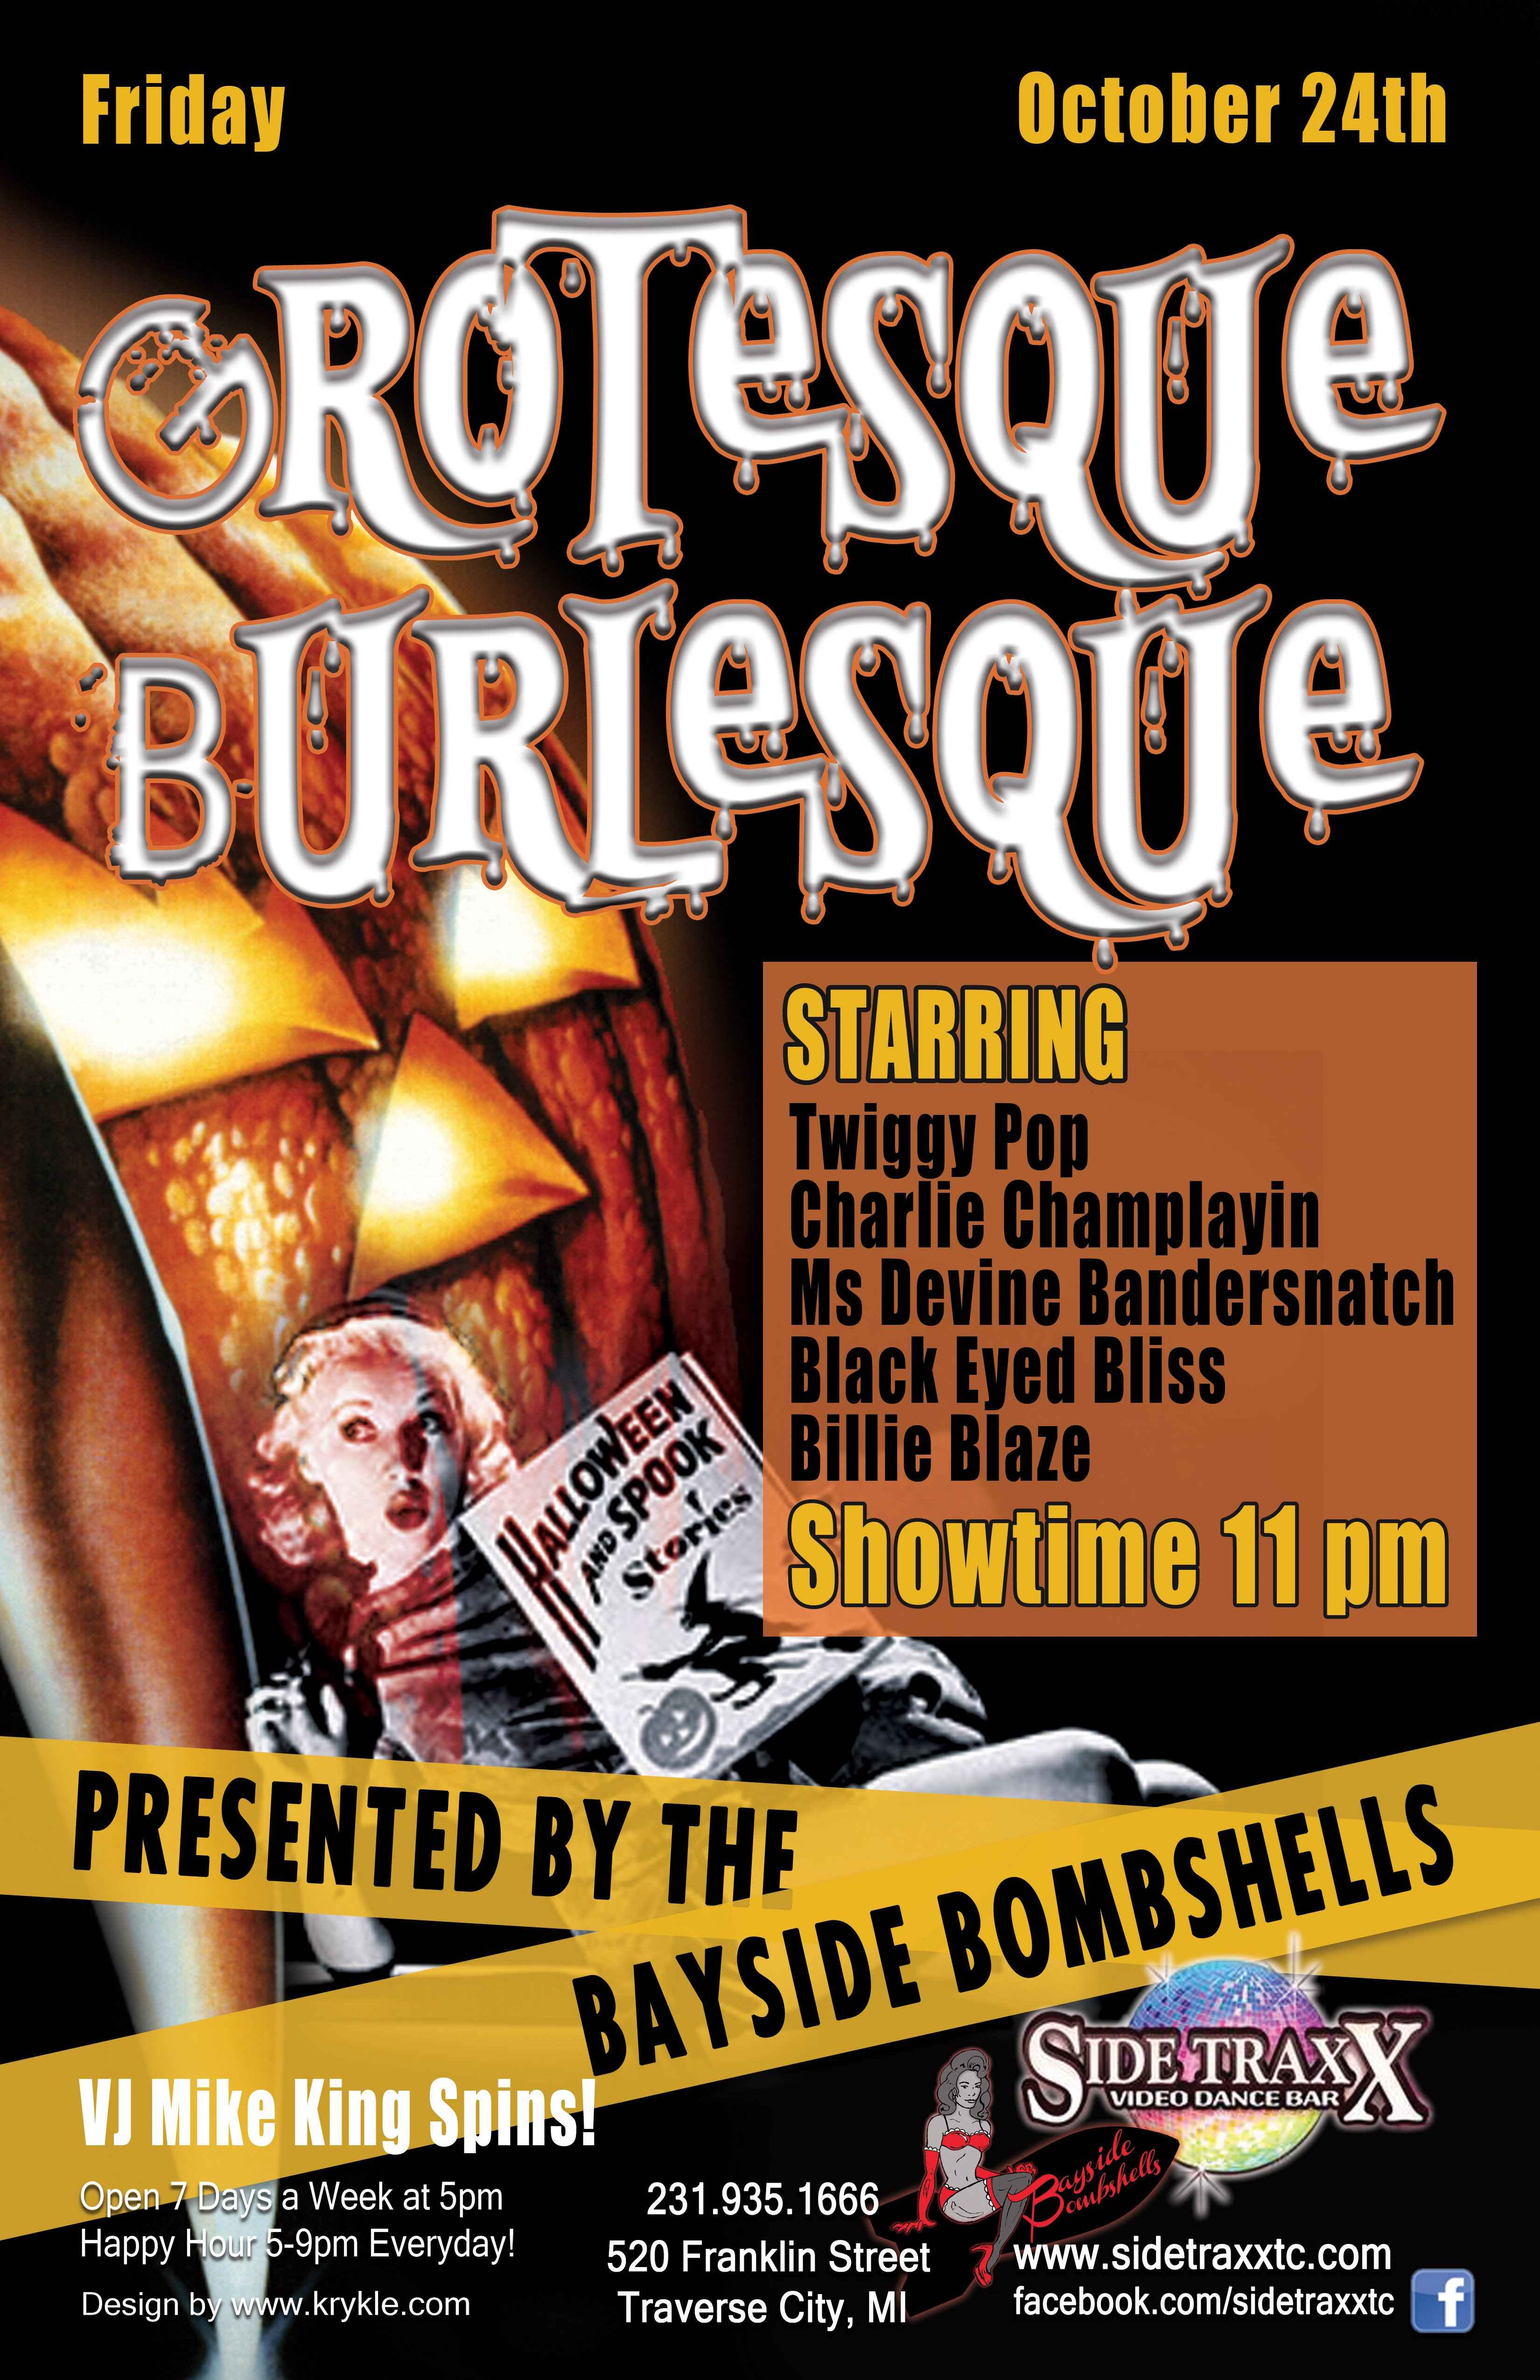 WEB Grotesque Burlesque - 2014 - Bayside Bombshells - Design by Krykle LLC